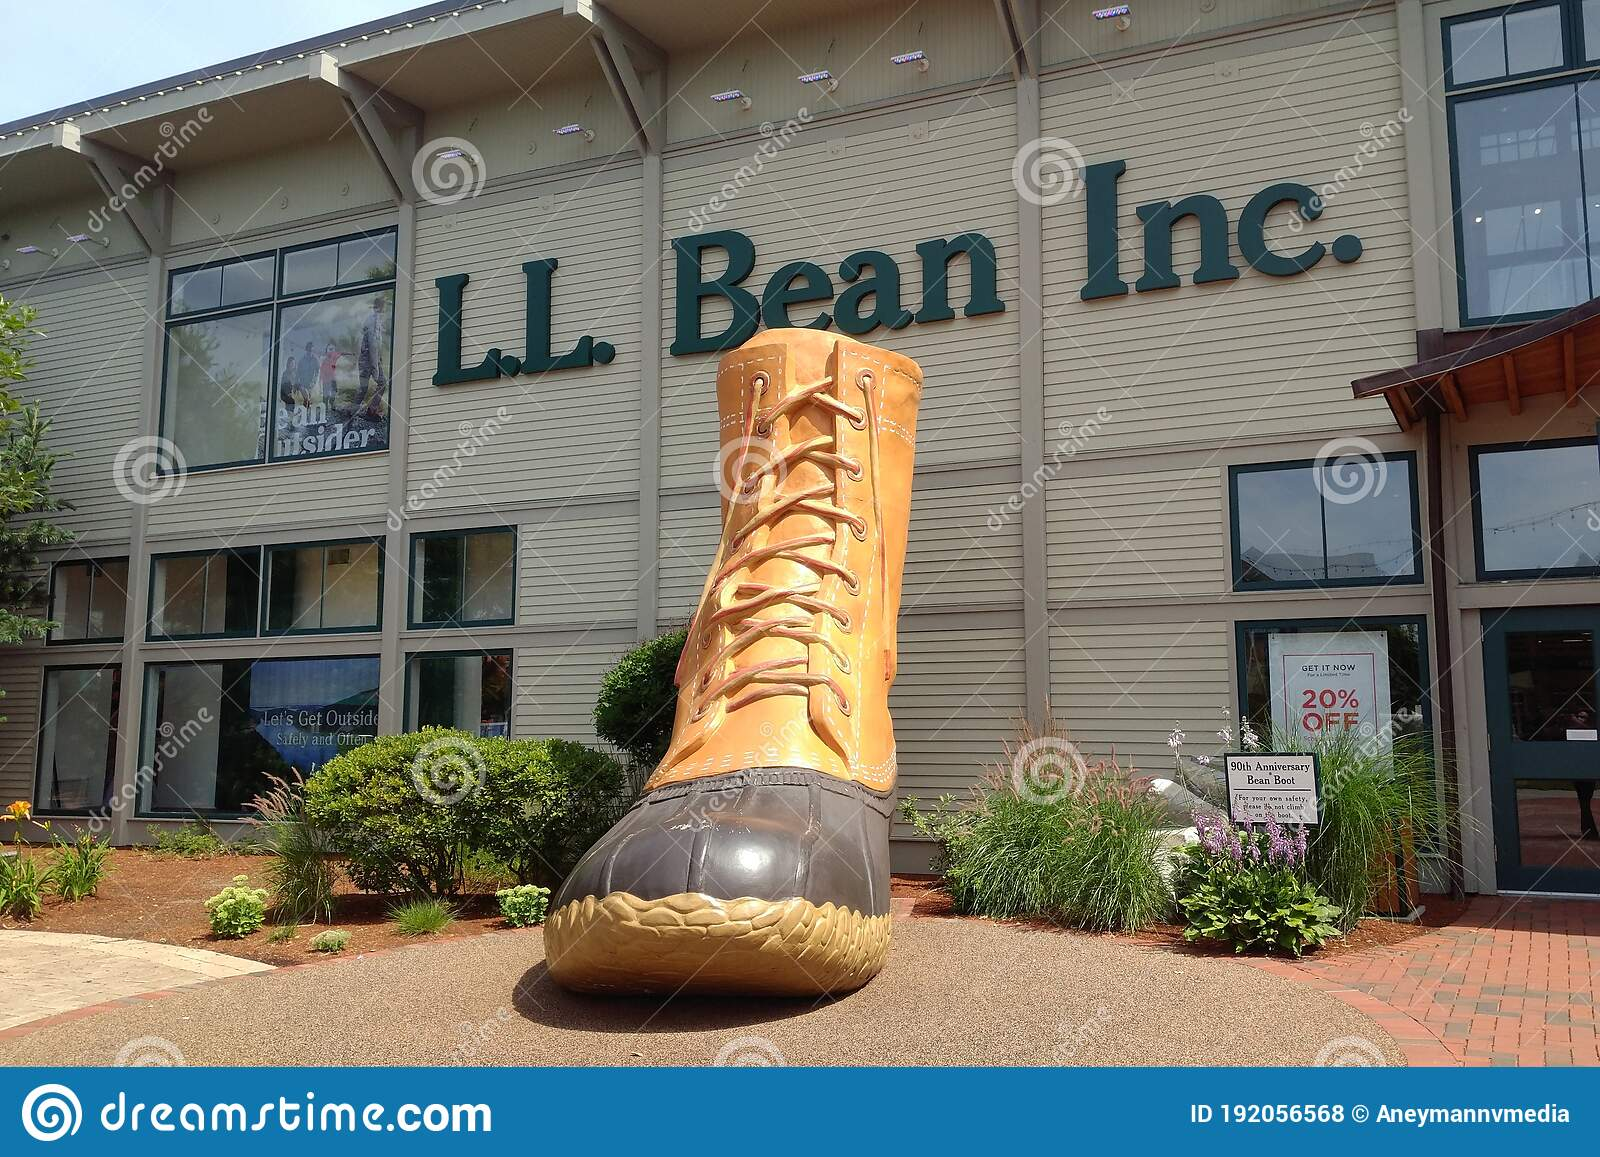 boot store near me now